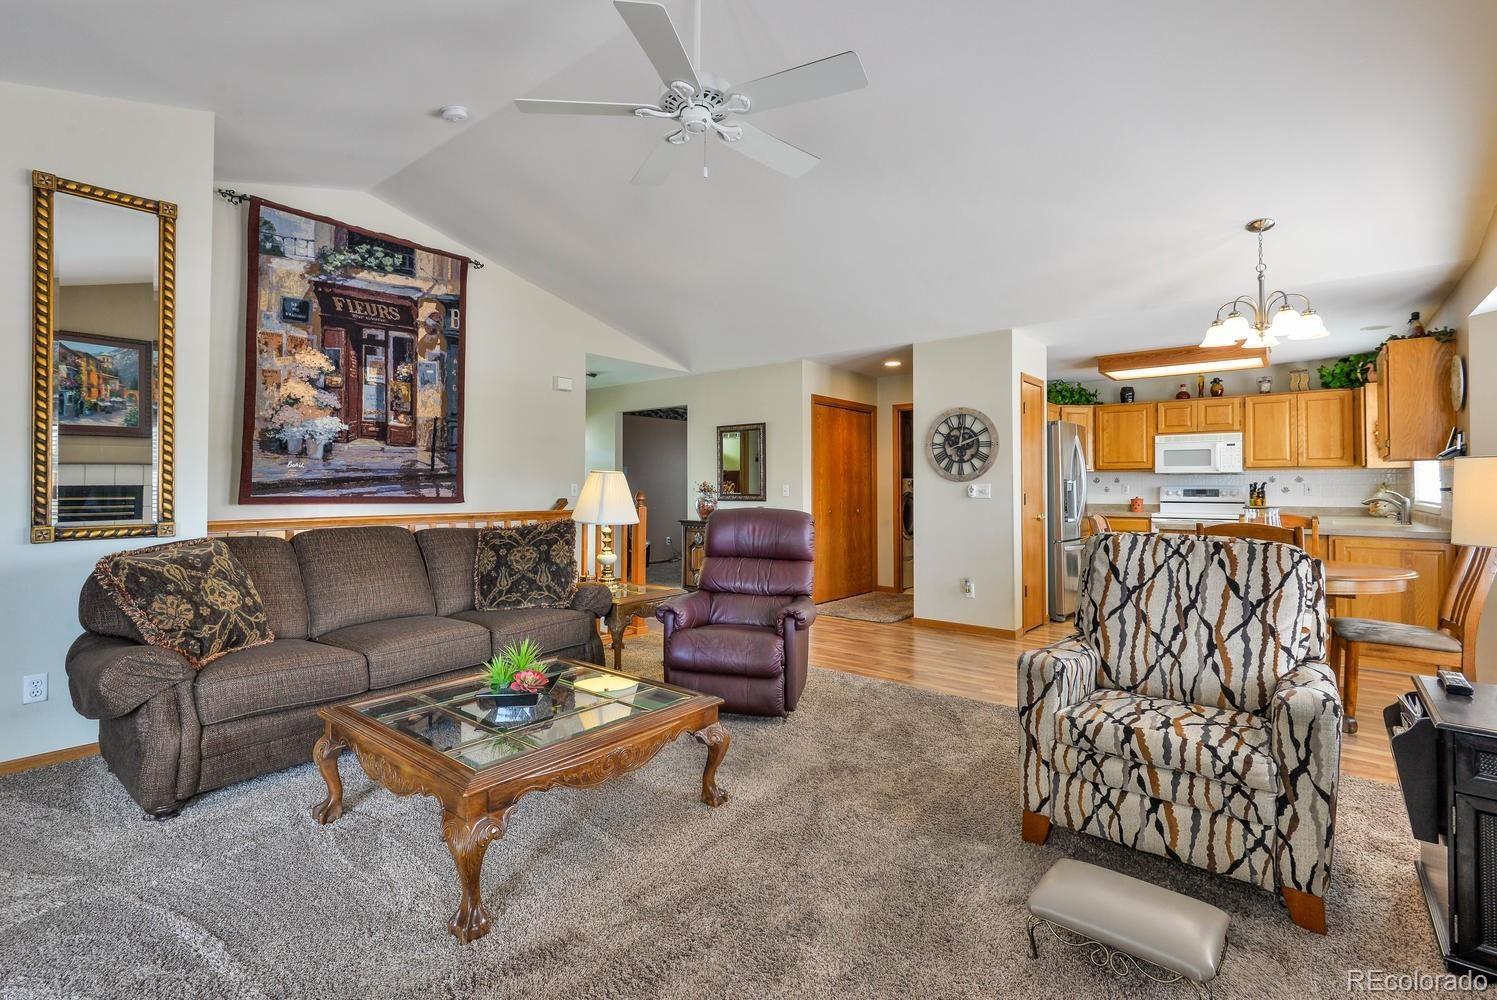 MLS# 5717707 - 3 - 3037 Antelope Road, Fort Collins, CO 80525